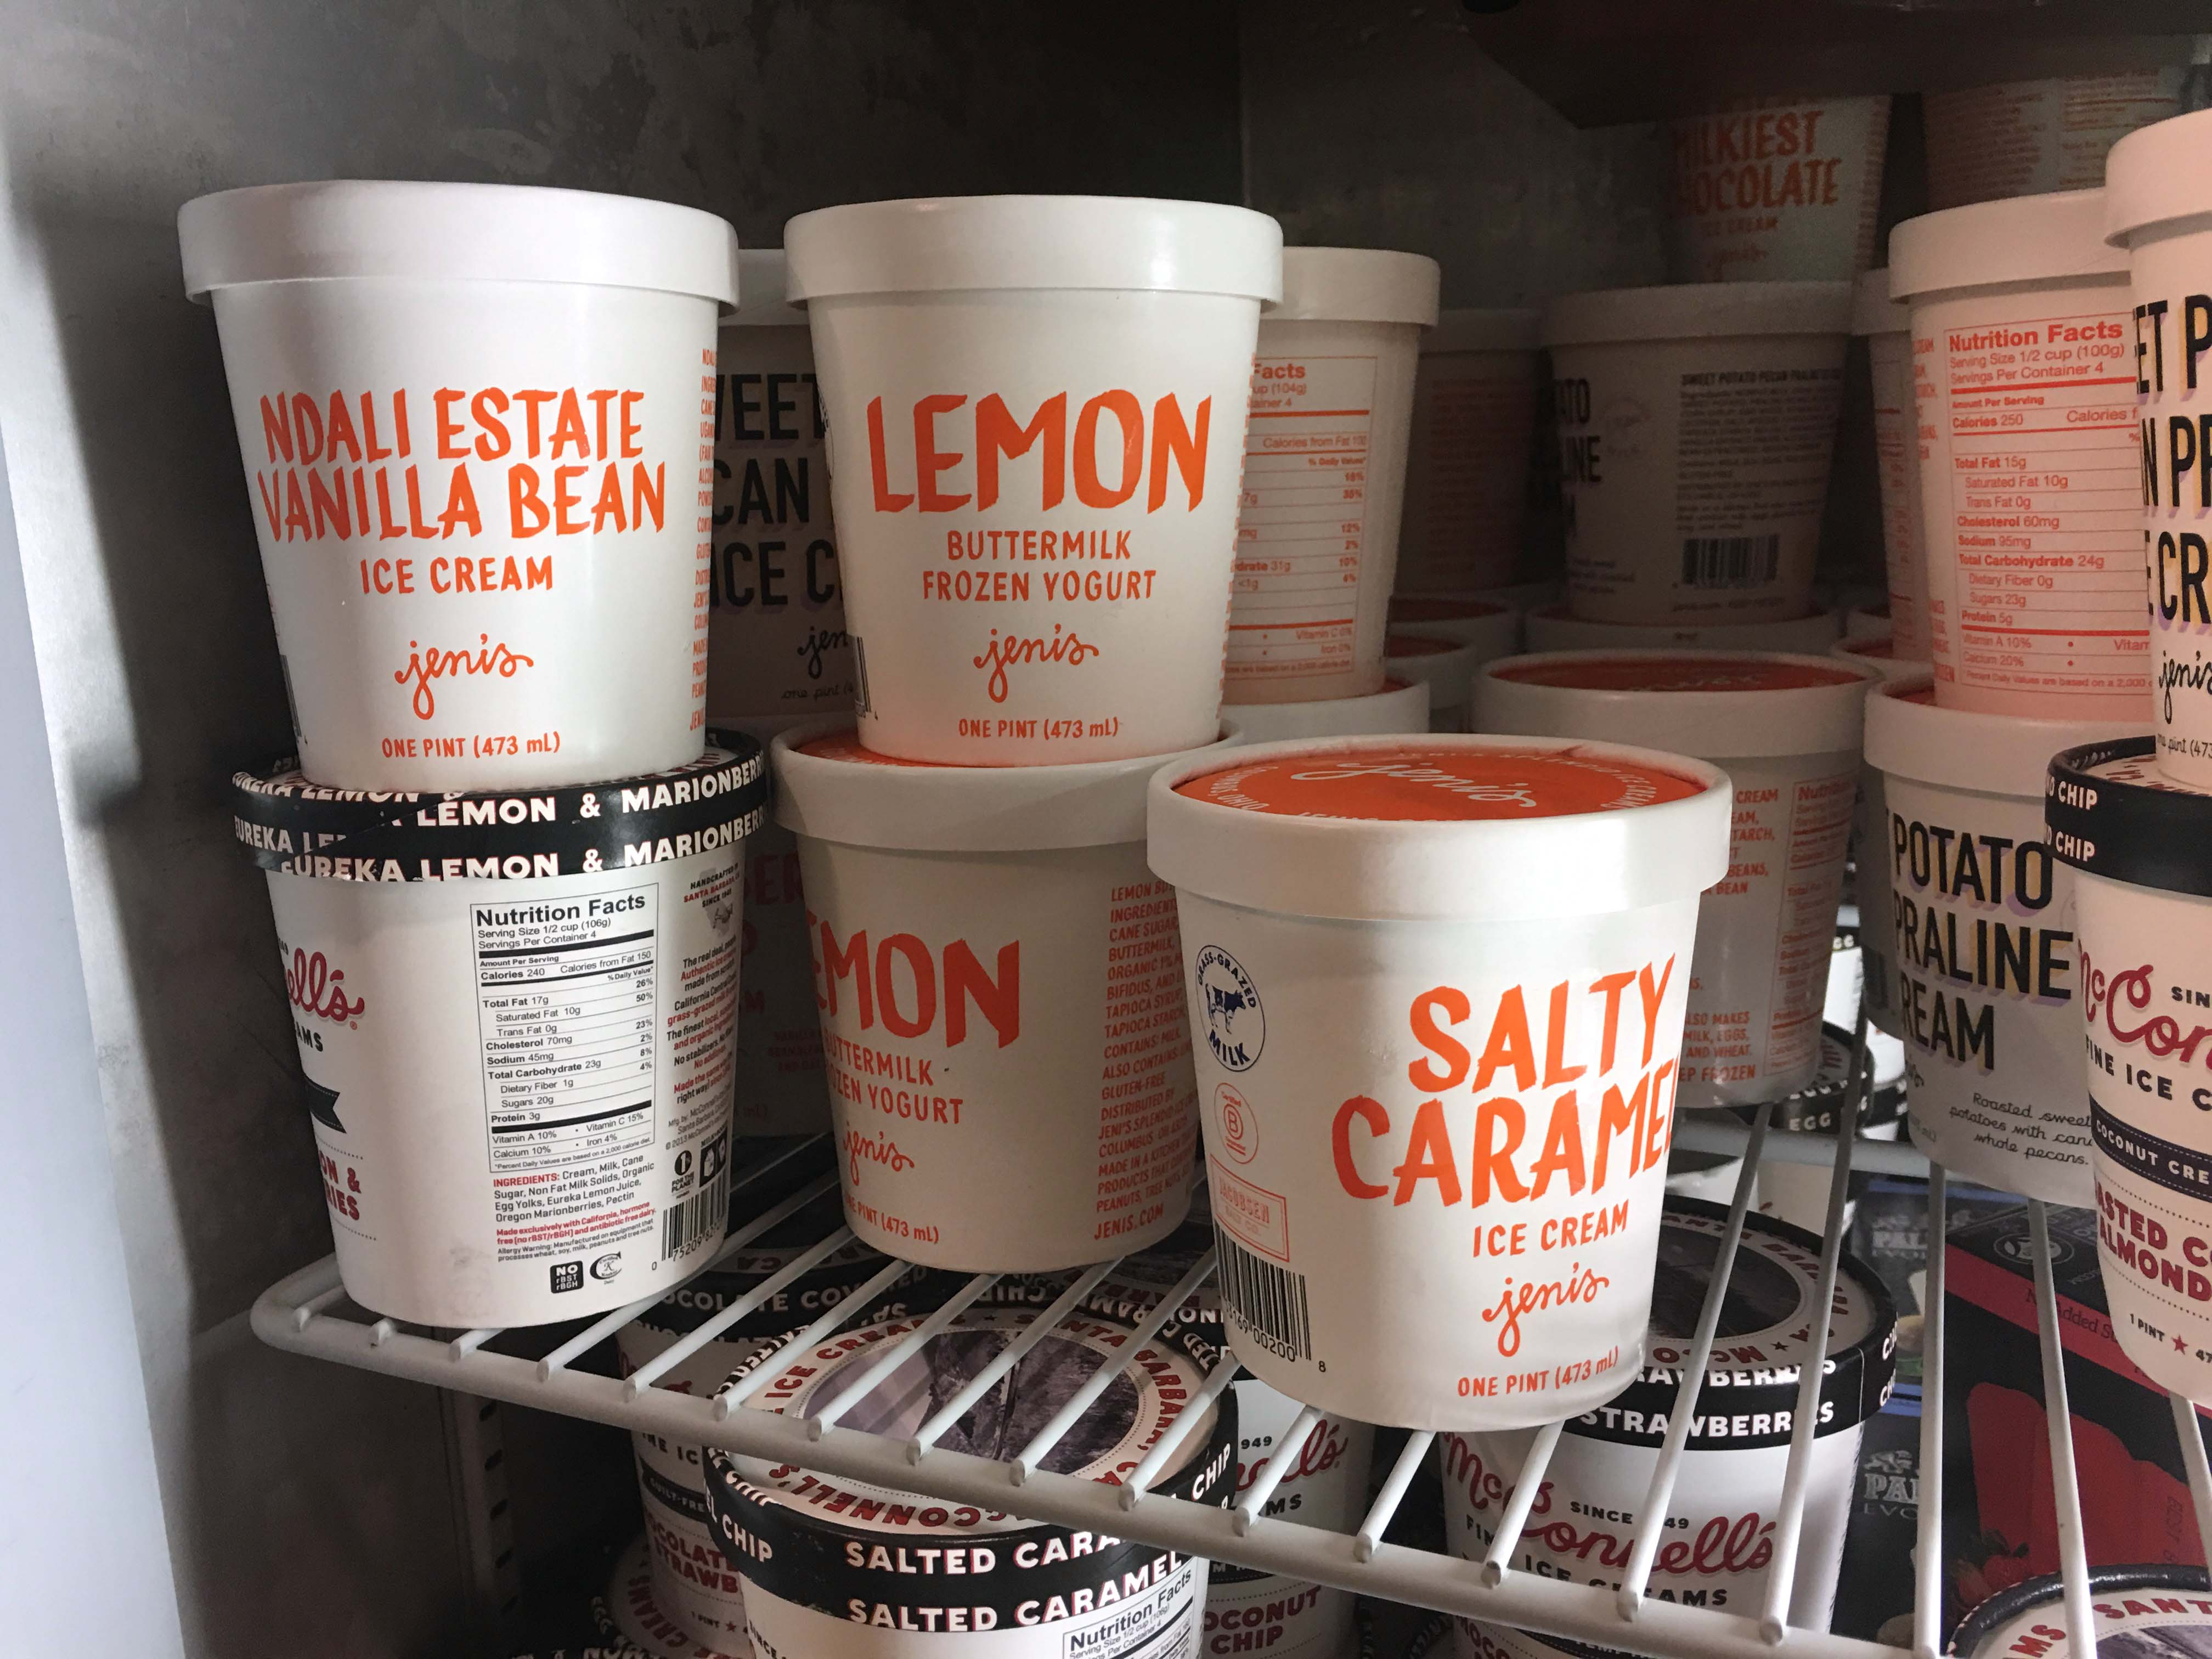 New Jenis containers